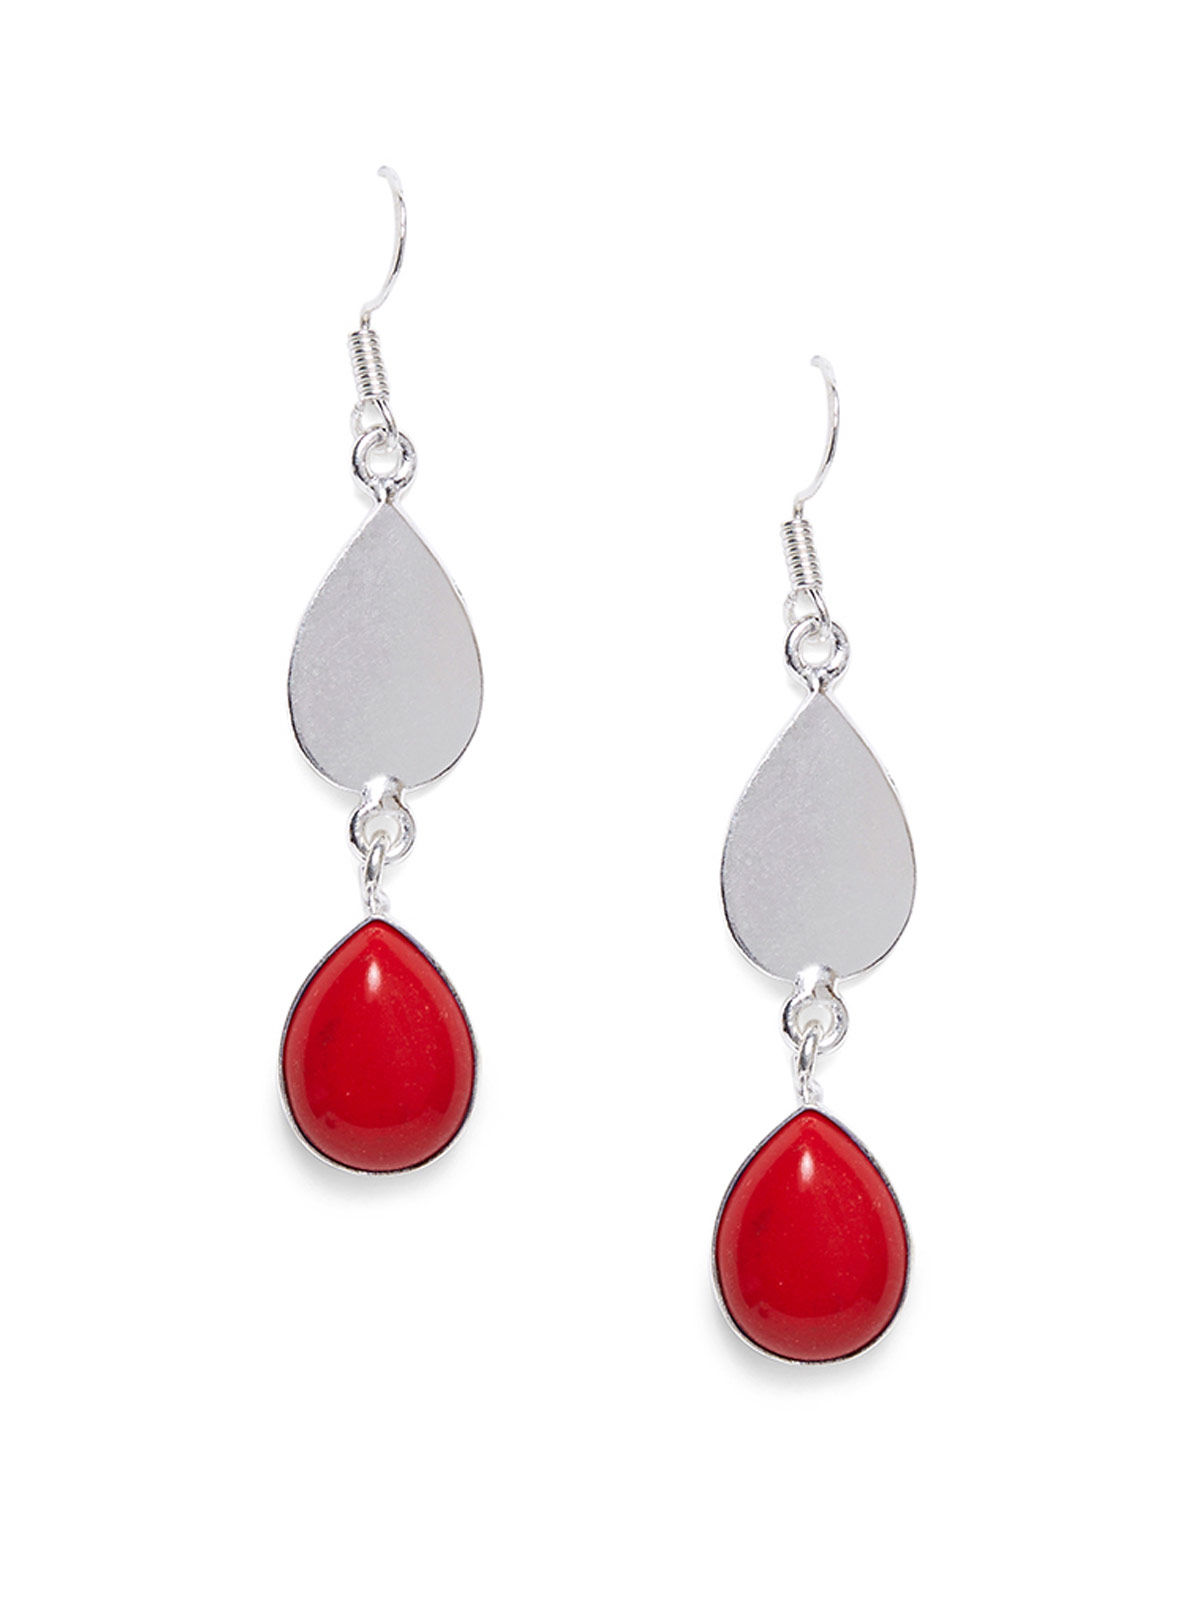 Imli Street red color silver tone brass earrings